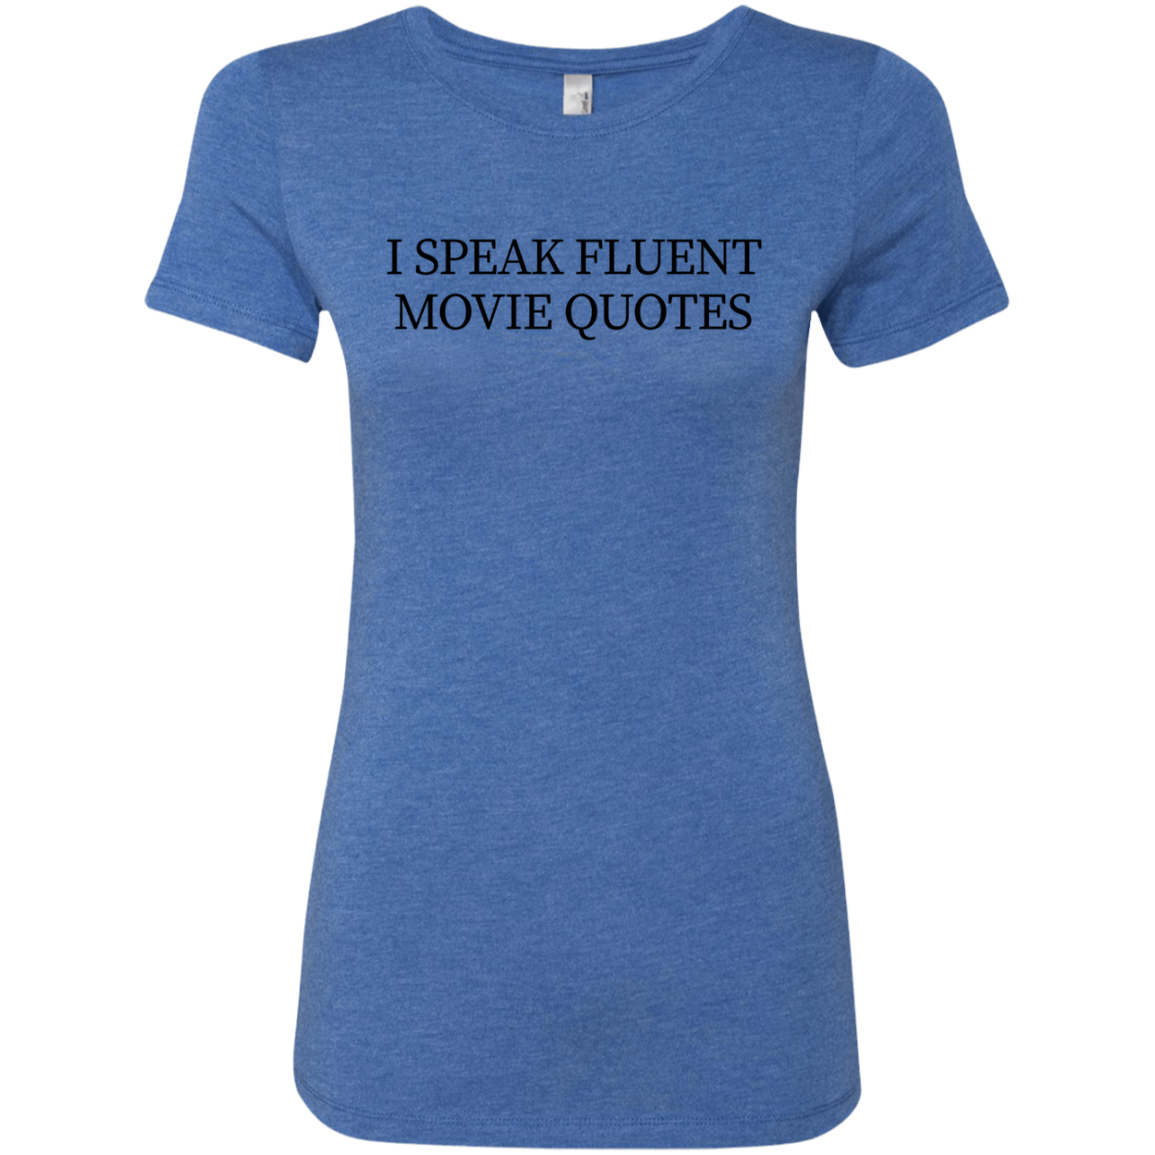 I Speak Fluent Movie Quotes Women's Classic Tee